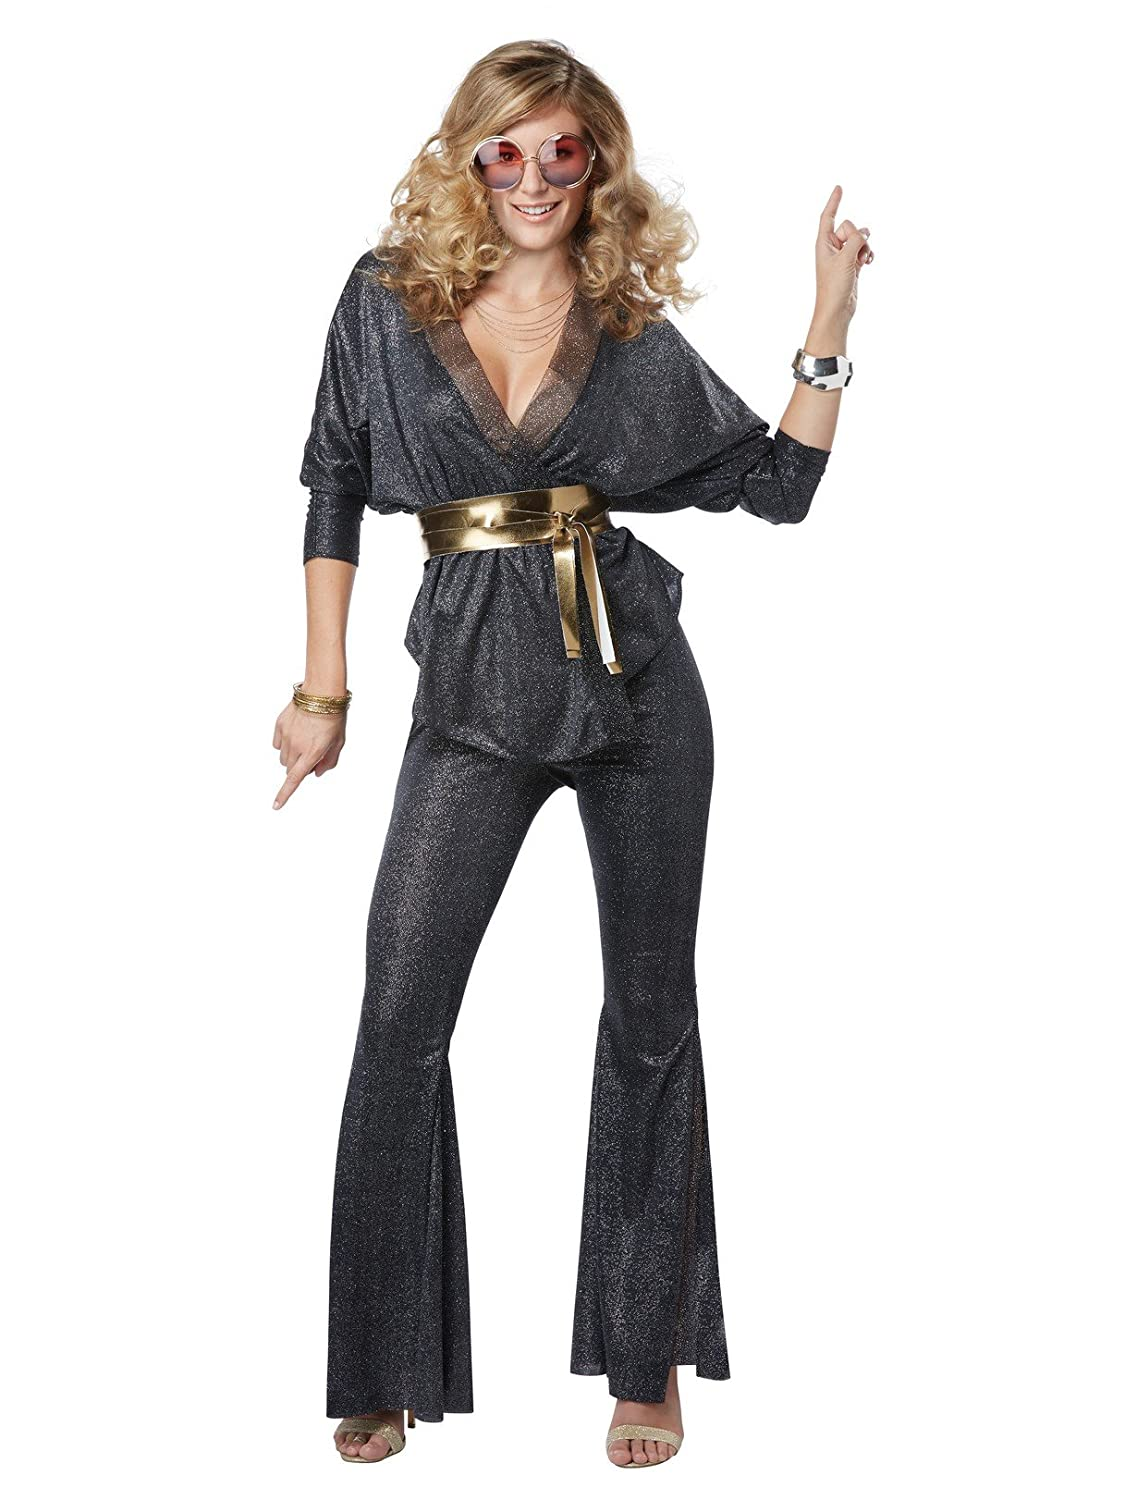 70s Costumes: Disco Costumes, Hippie Outfits Dazzler Disco Costume for Adults $29.13 AT vintagedancer.com